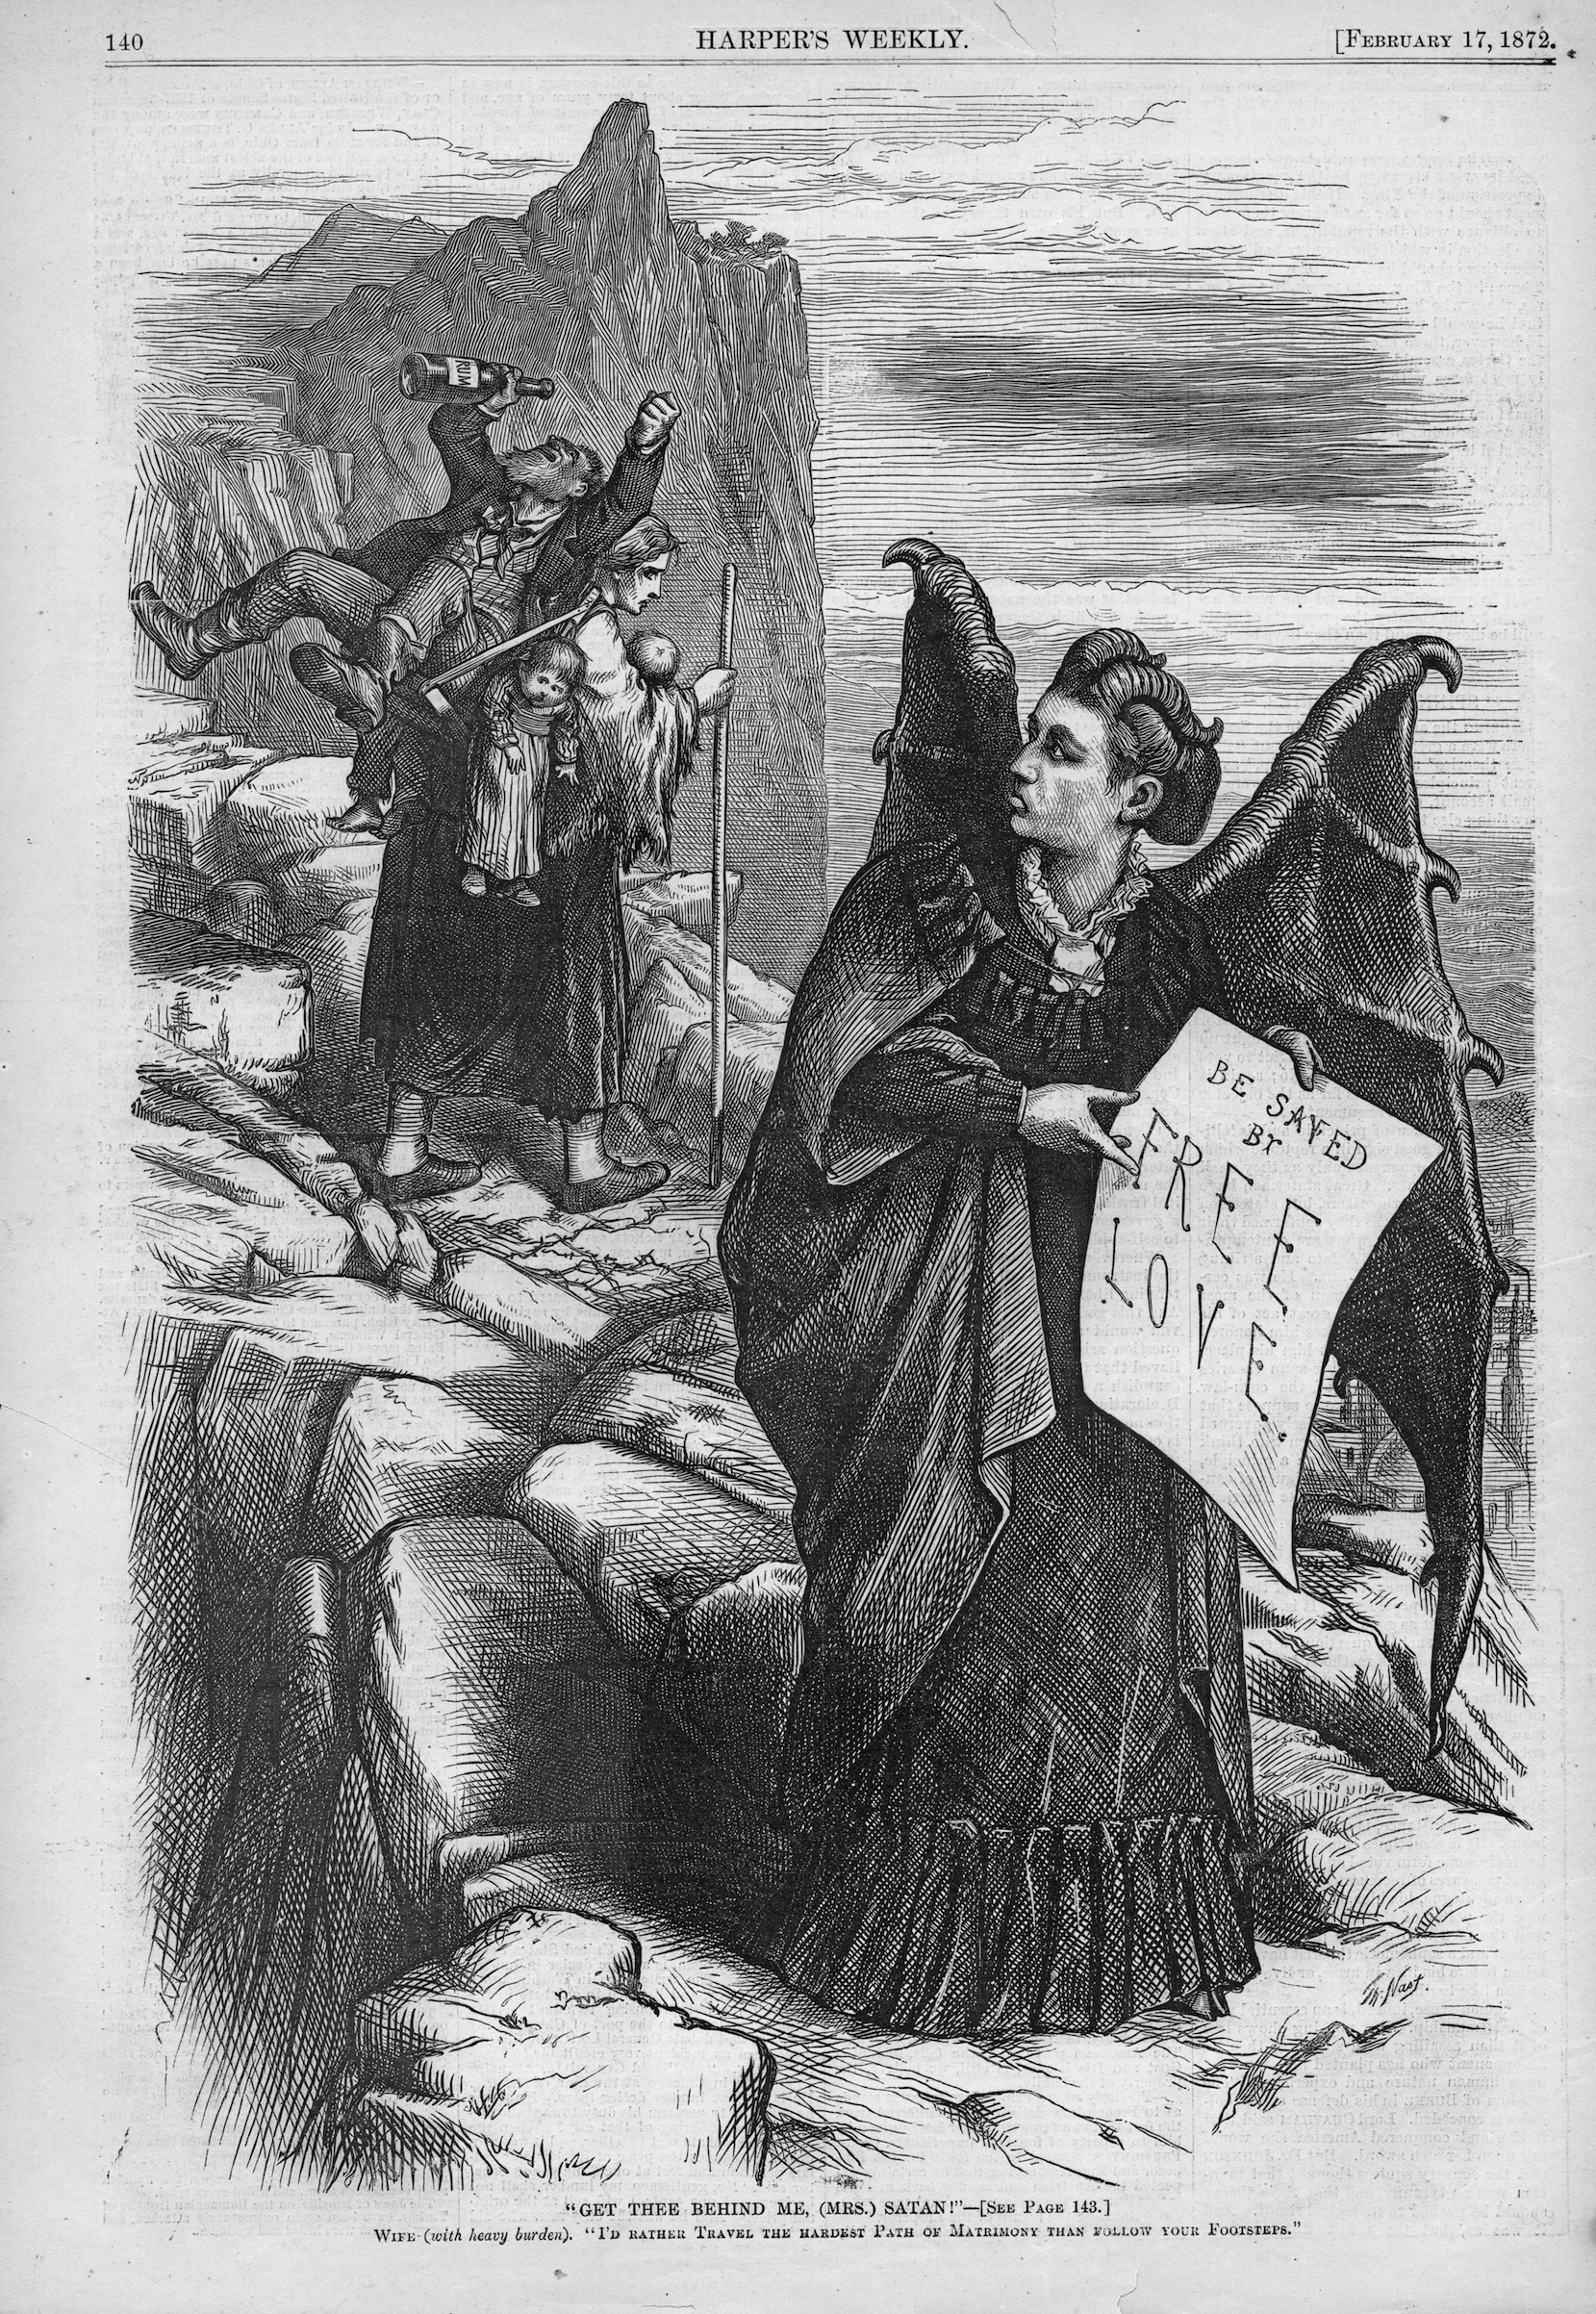 Print depicting suffragist Victoria Woodhull as a winged 'Mrs Satan, illustrated by Thomas Nast, and published in Harper's Weekly for the American market, 1872.